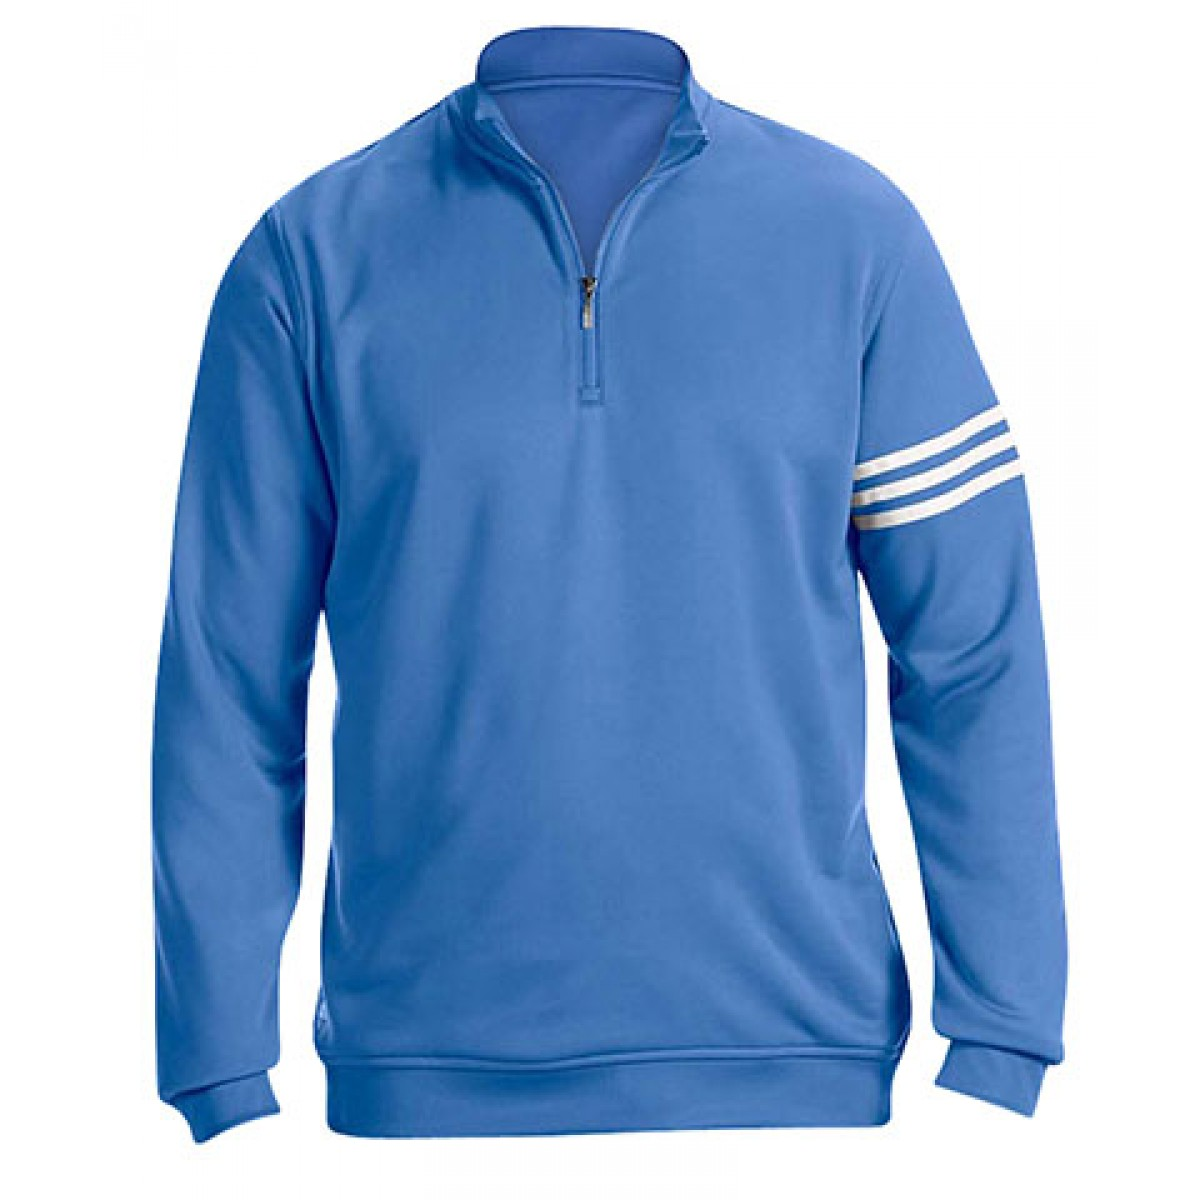 Adidas Golf Men's ClimaLite® 3-Stripes Pullover-Blue-3XL